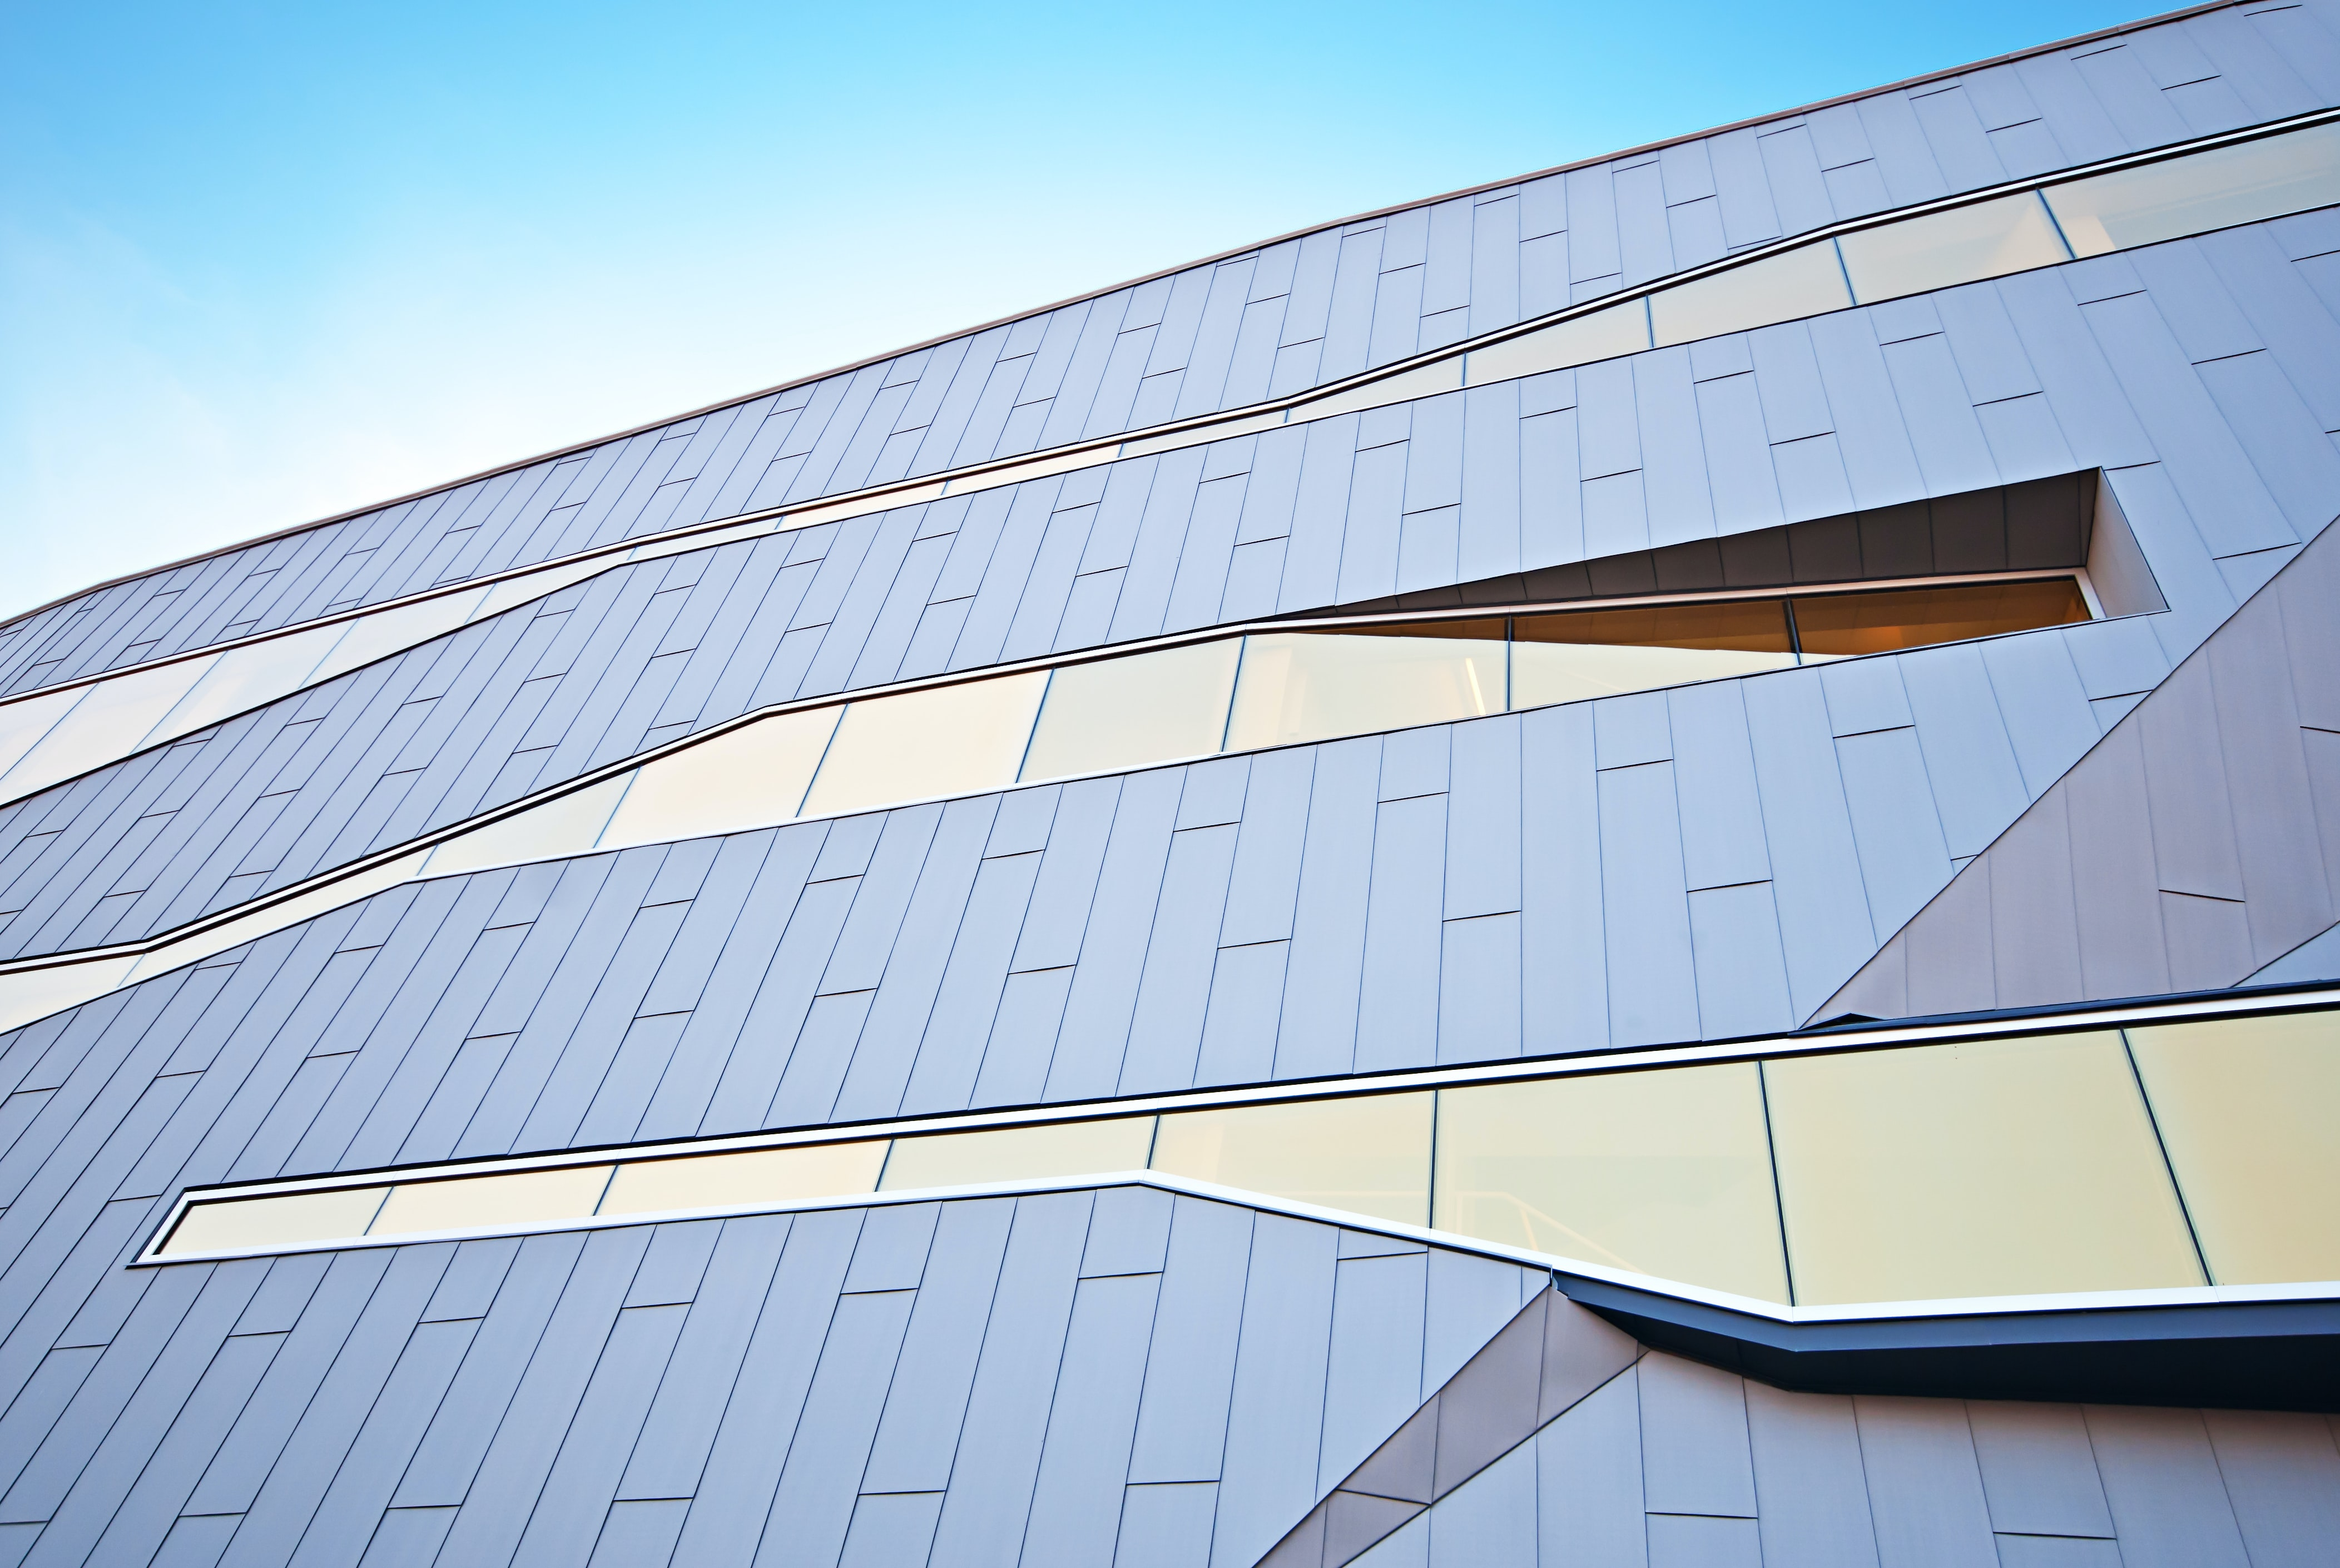 Modern building design with distinctive unique shaped glass windows